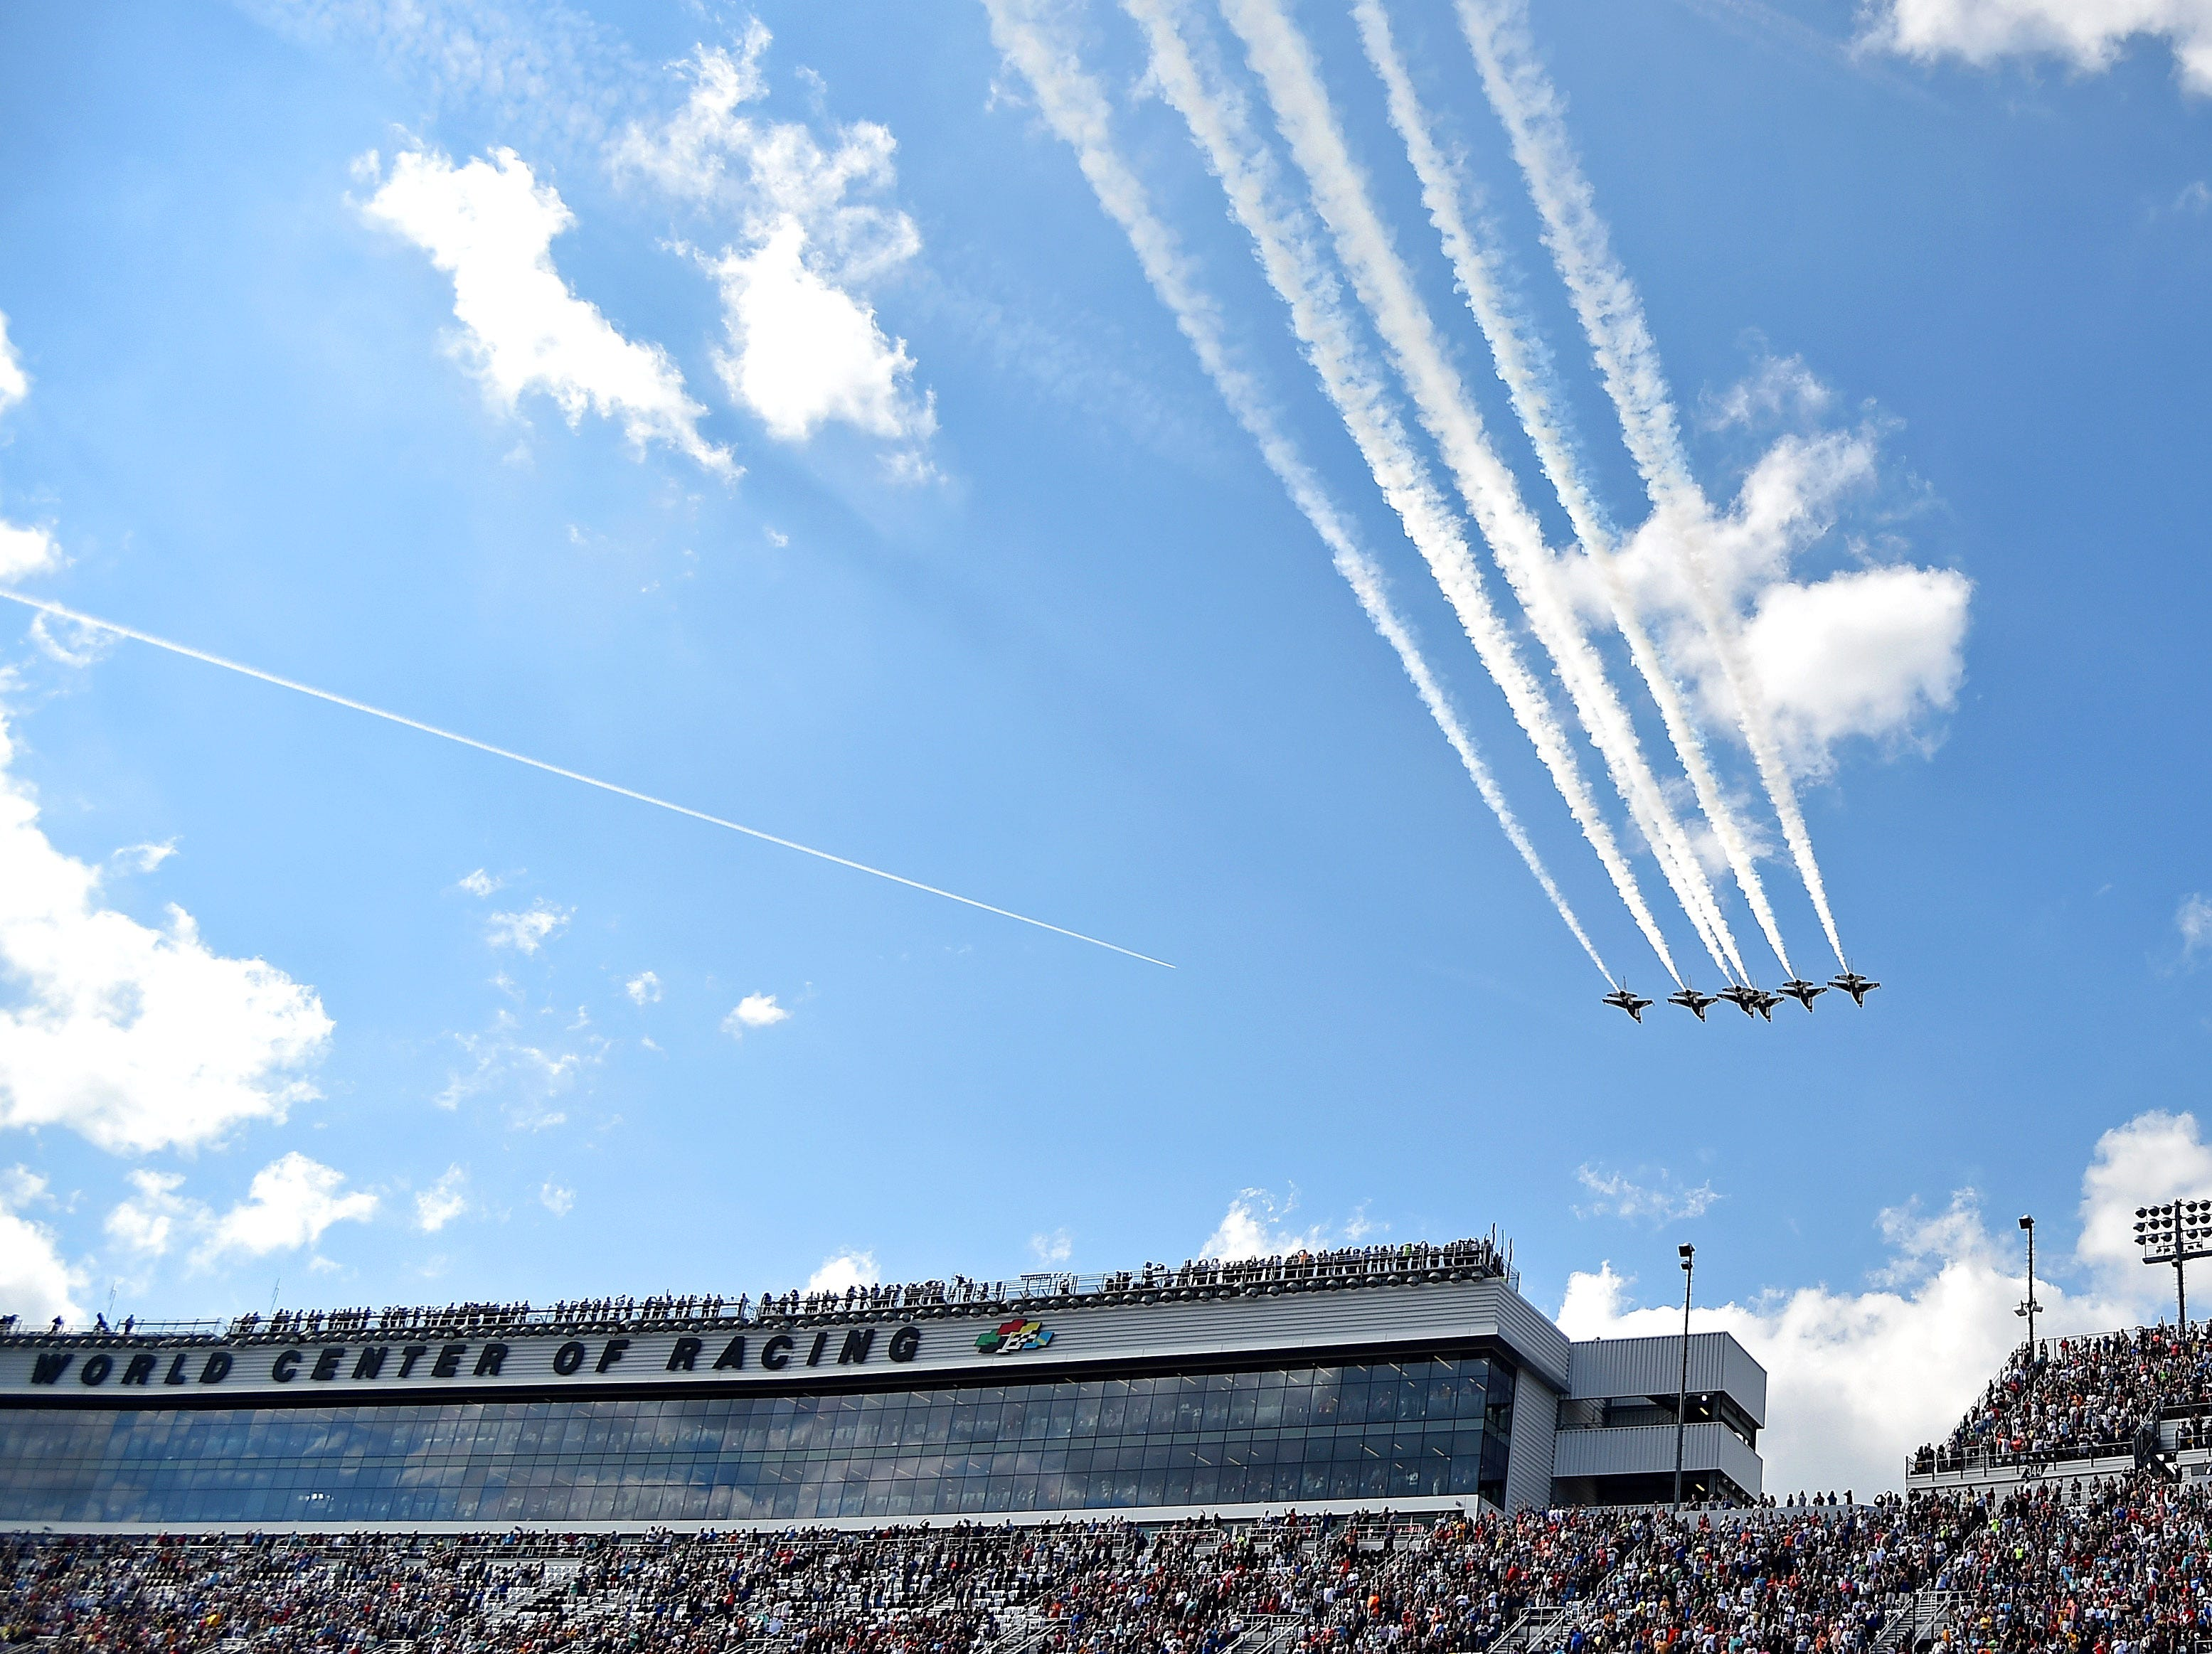 The U.S. Air Force Thunder Birds perform a flyover before the 2019 Daytona 500 at Daytona International Speedway.